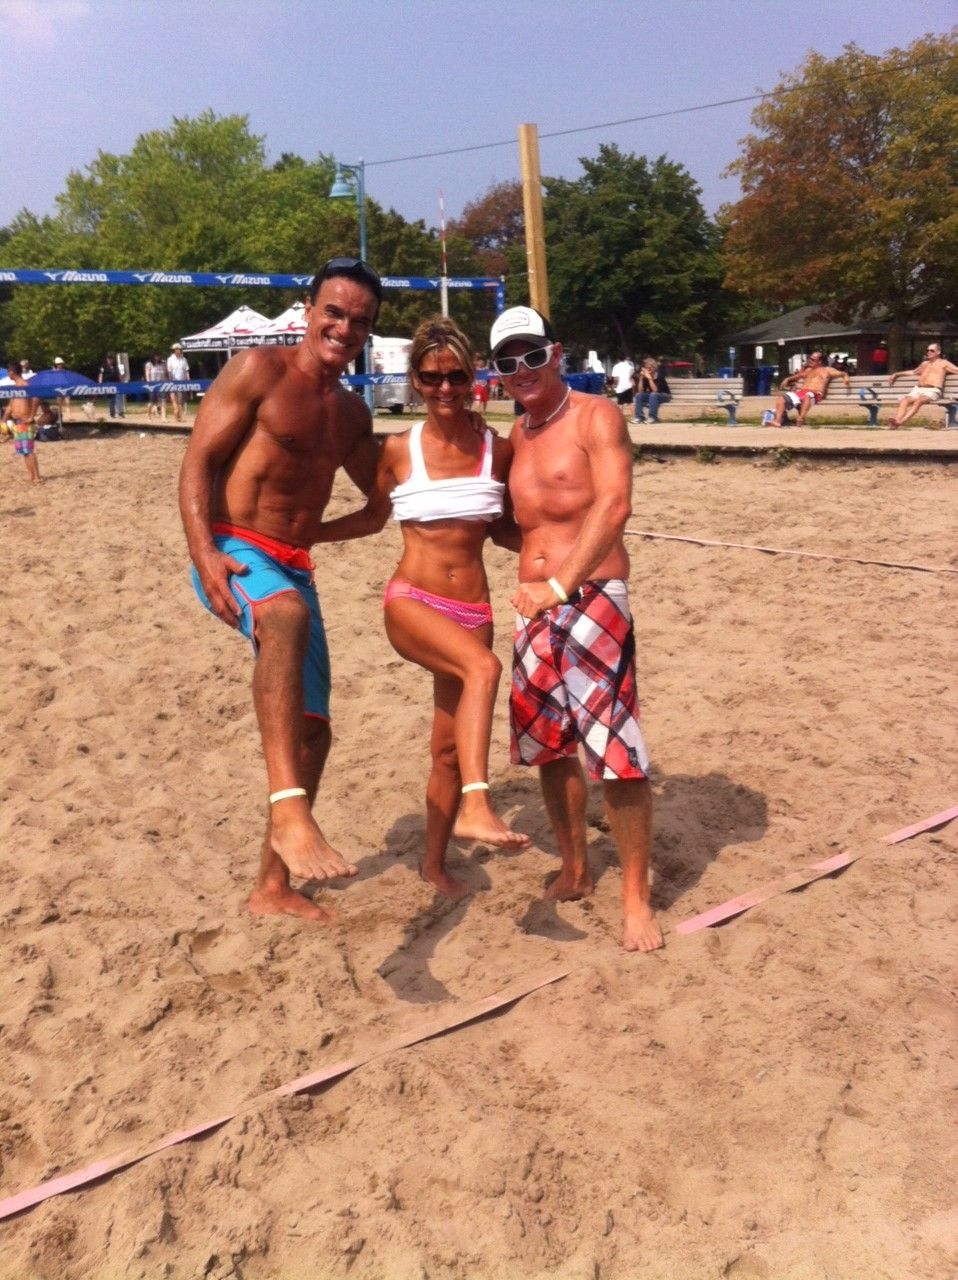 Beach volleyball players loved this! They wore the bracelets around their ankle to avoid getting in the way of wrists